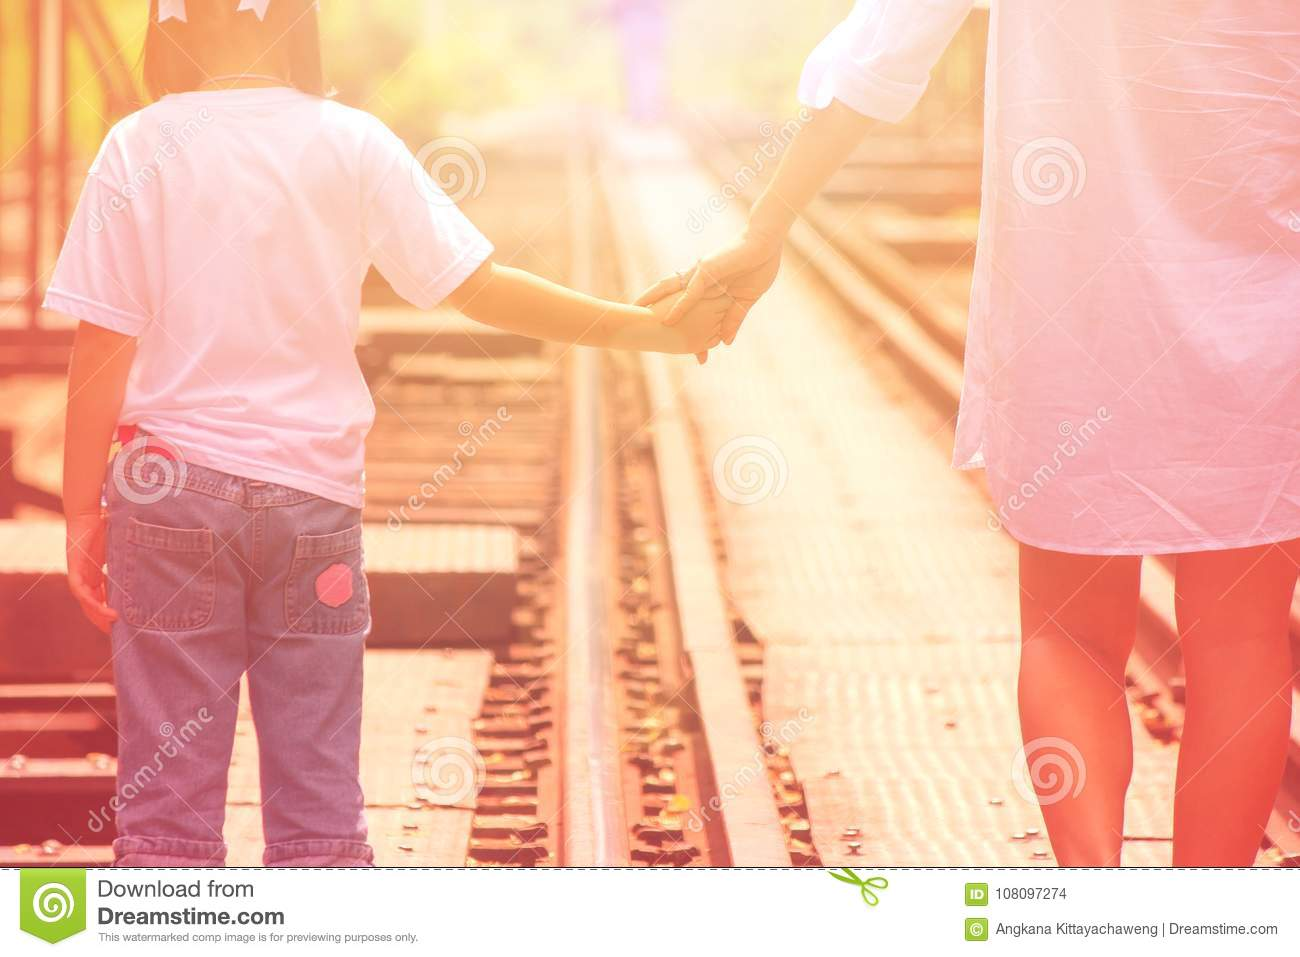 Adorable Family Concept : Woman and children walking on railroad tracks and holding hand together with looking to forward.